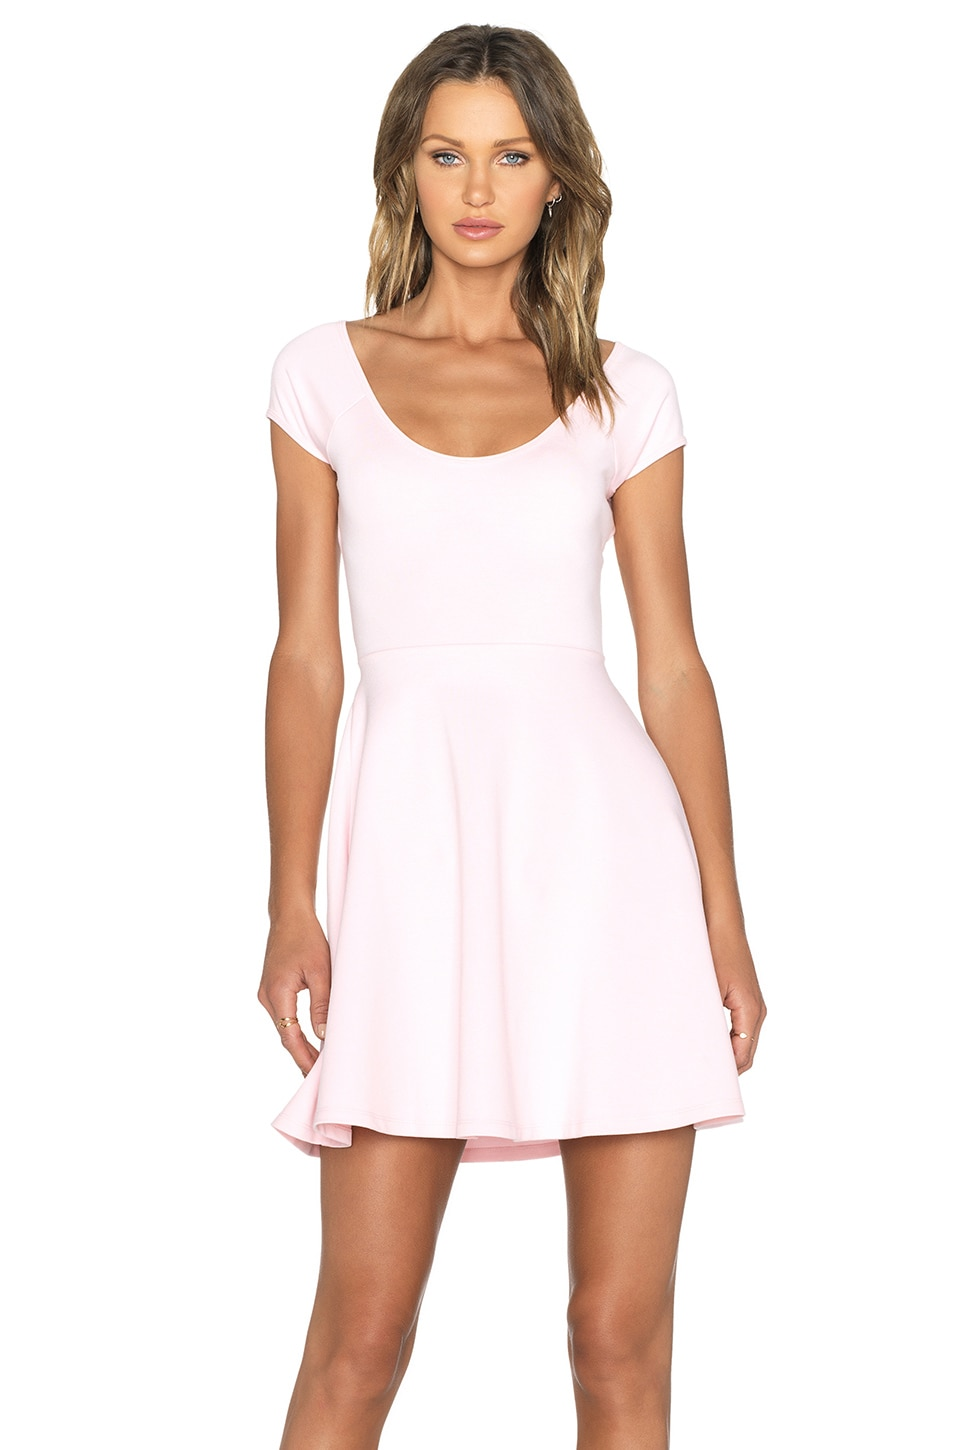 BLQ BASIQ Mini Dress in Light Pink